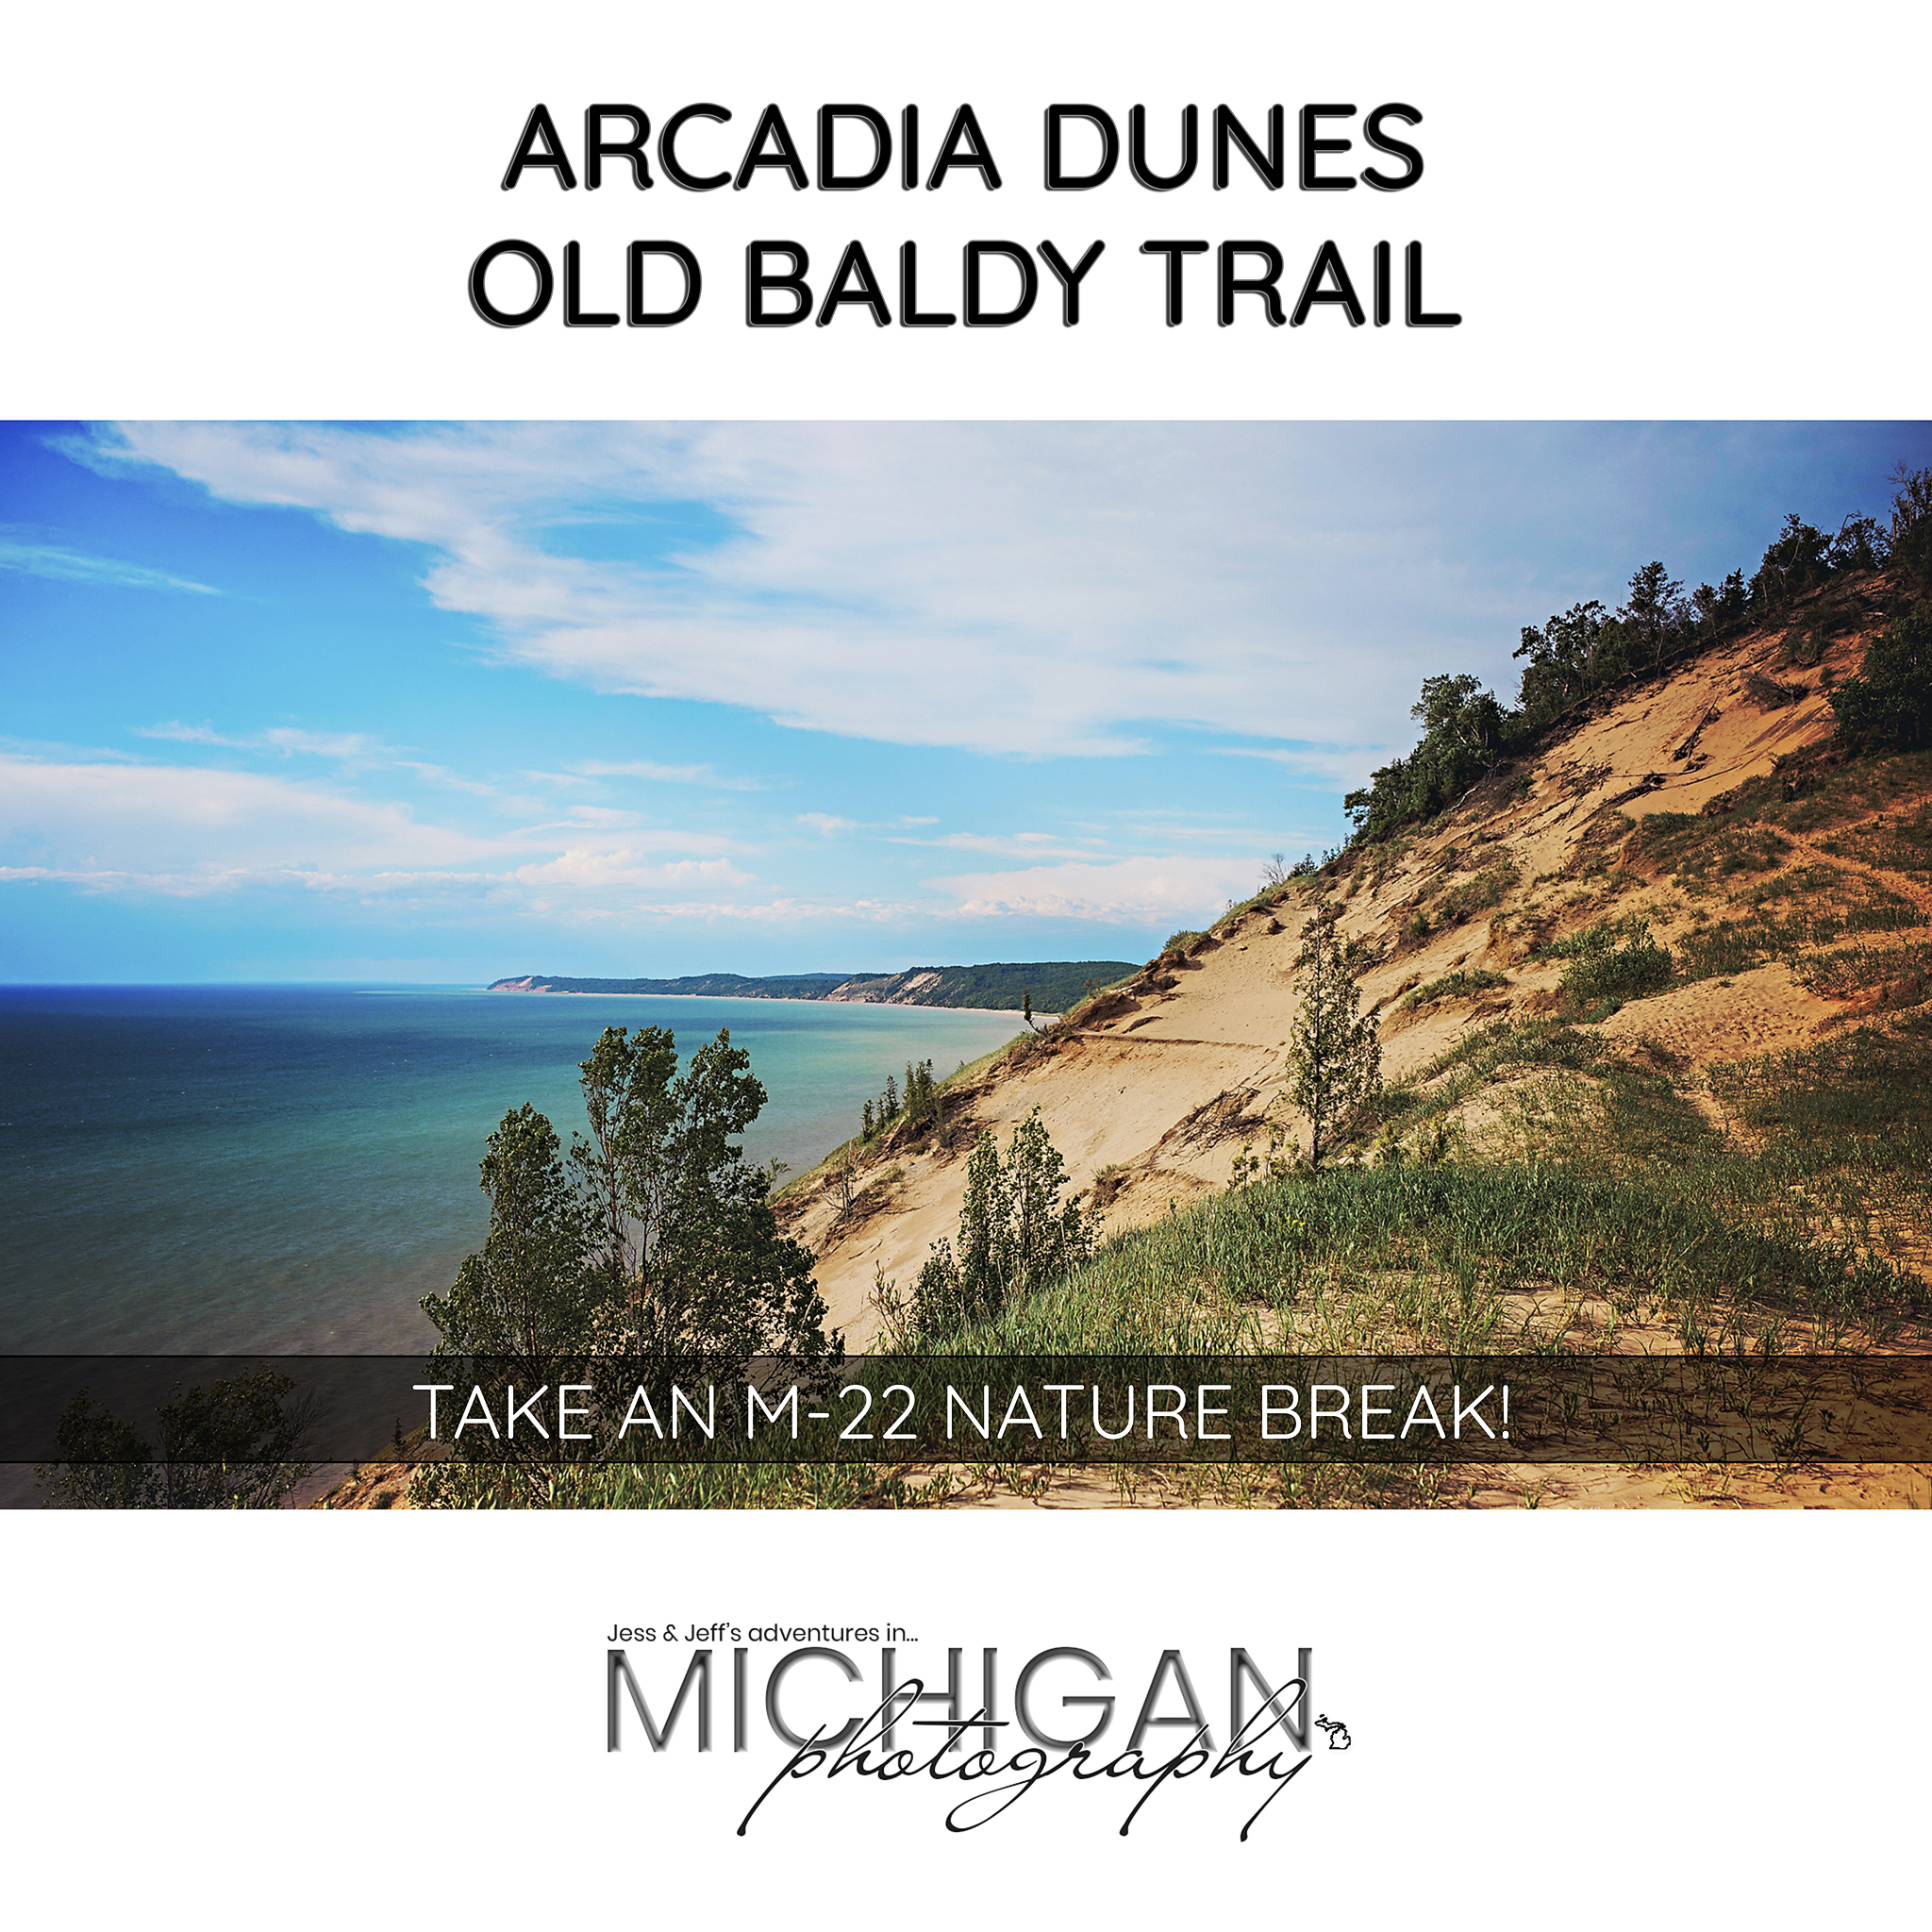 Old Baldy Trail in the C.S. Mott Arcadia Dunes Nature Preserve